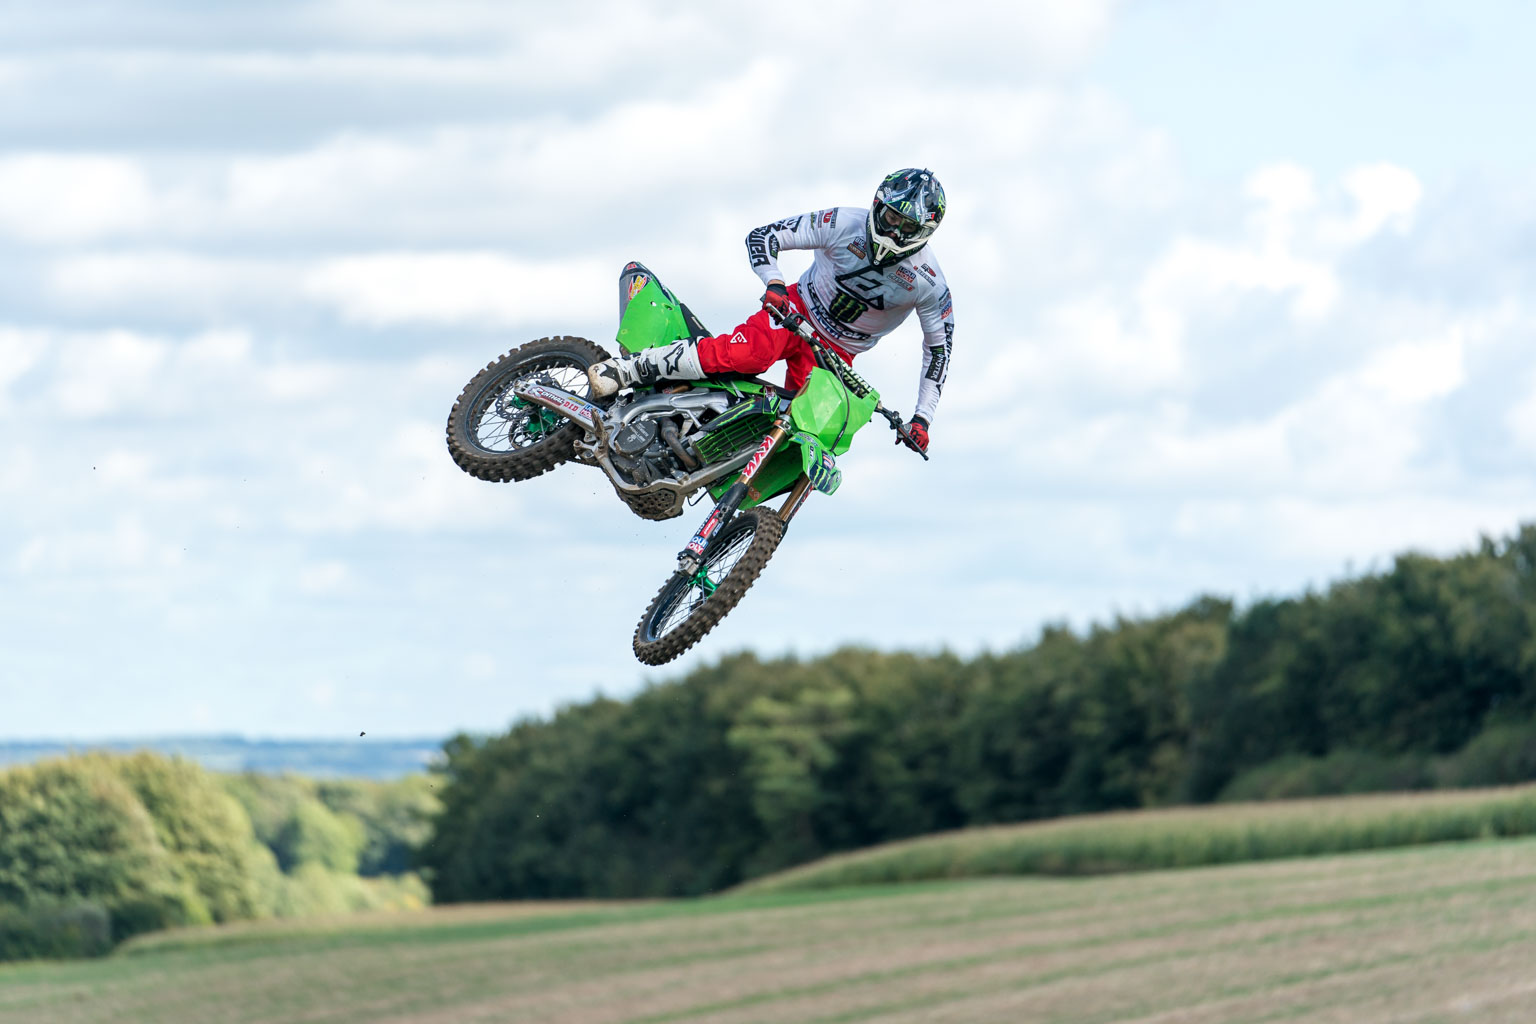 Searle is Britain's best hope for 250 glory